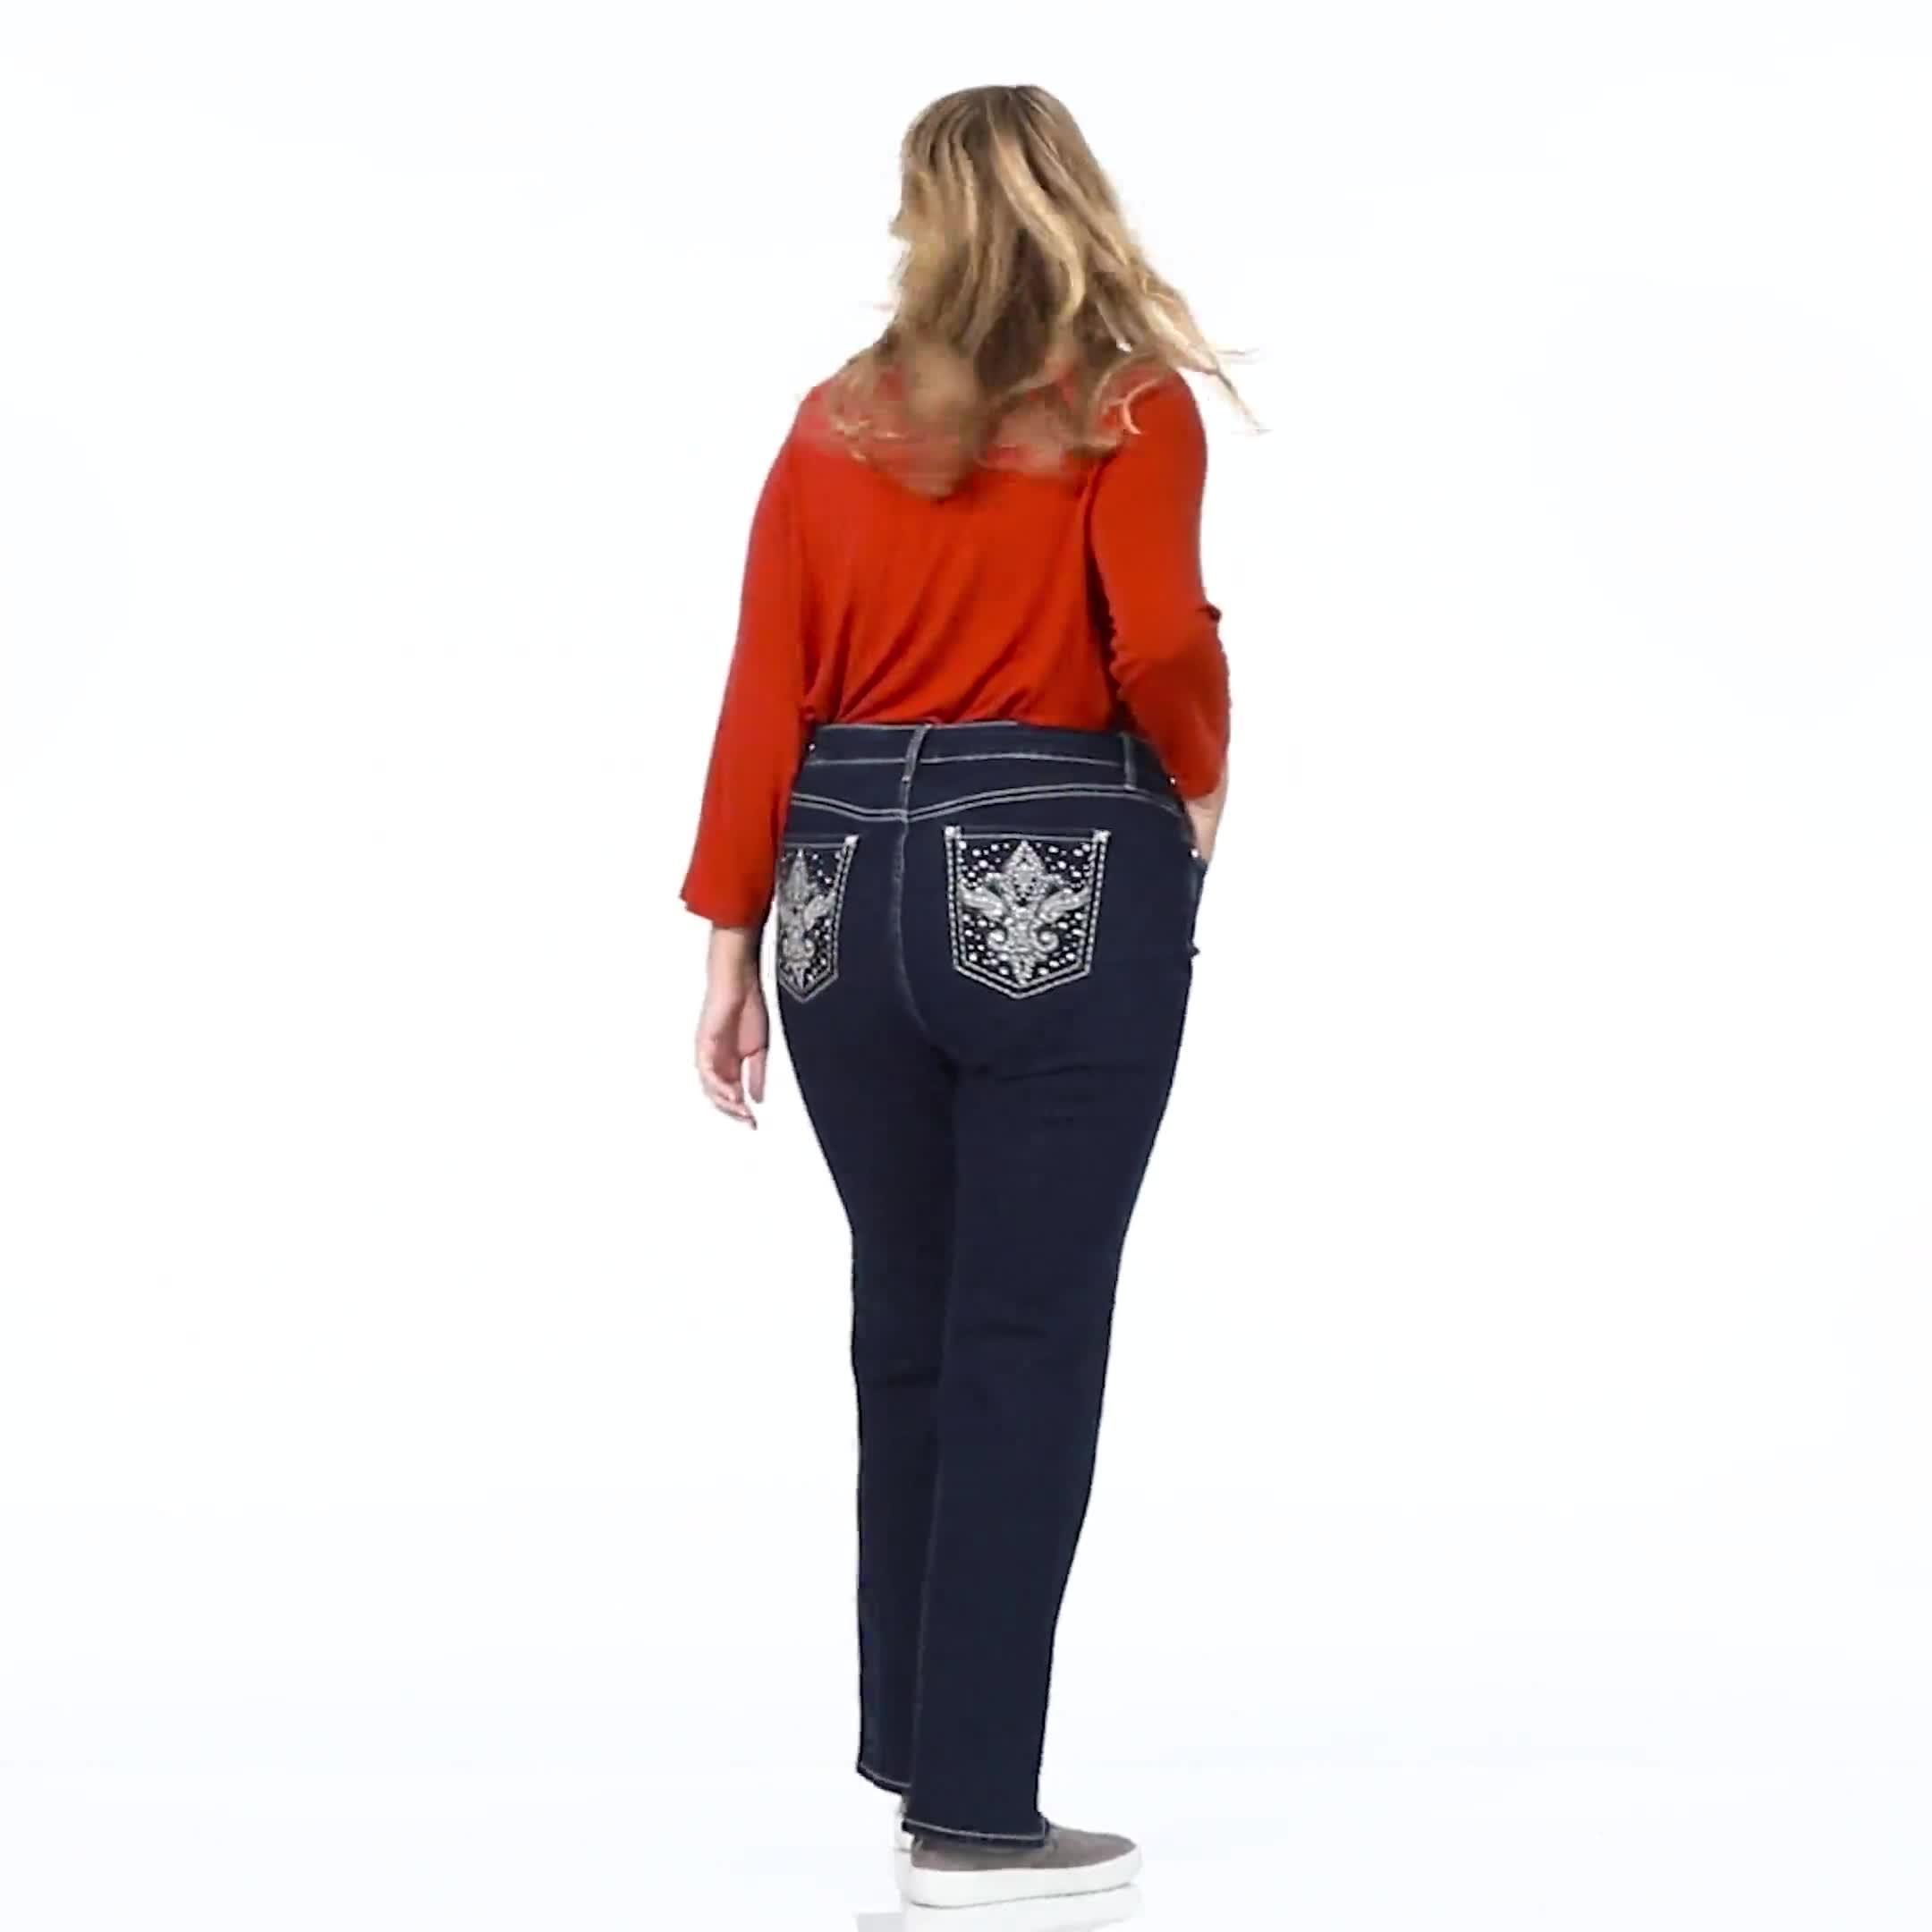 Plus Westport Signature 5 Pocket Bootcut Jean with Fleur-de- lis Bling Back Pocket  - Plus - Video